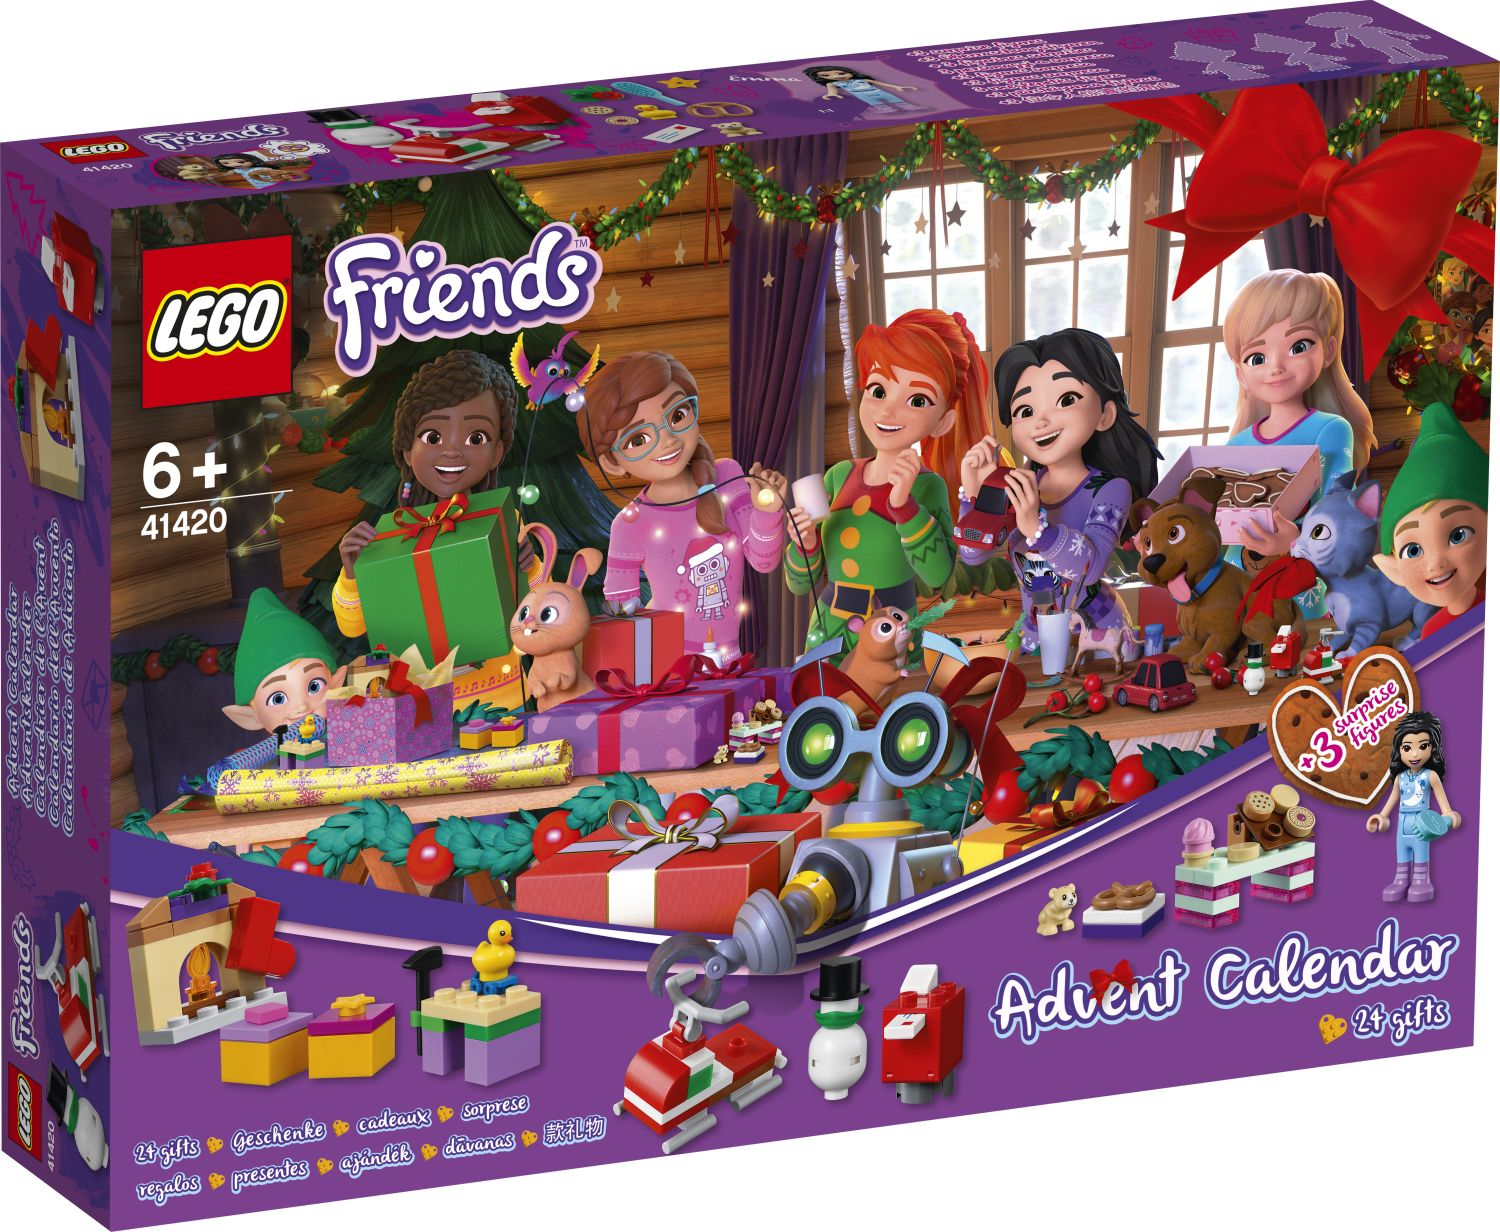 First Look LEGO Friends Advent Calendar 2020 (41420)! | The Brick